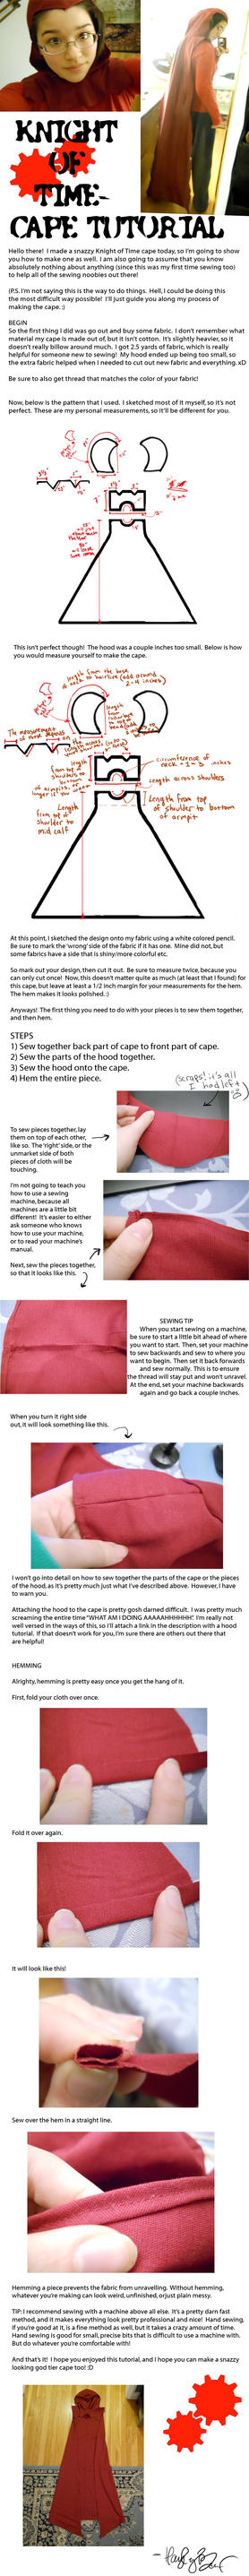 Knight of Time Cape: Tutorial by HABanime